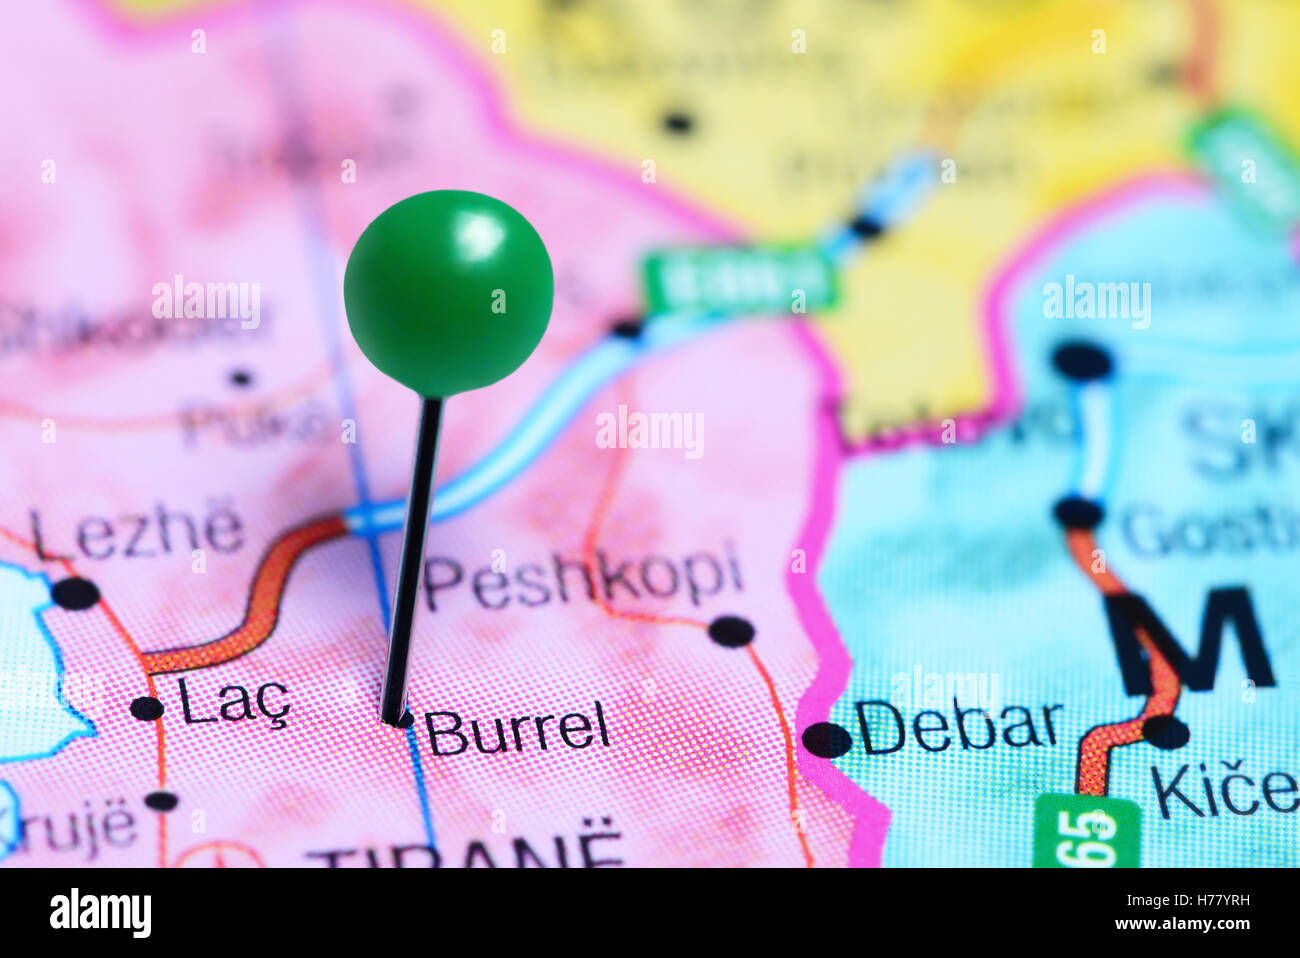 Burrel pinned on a map of Albania Stock Photo 124950661 Alamy